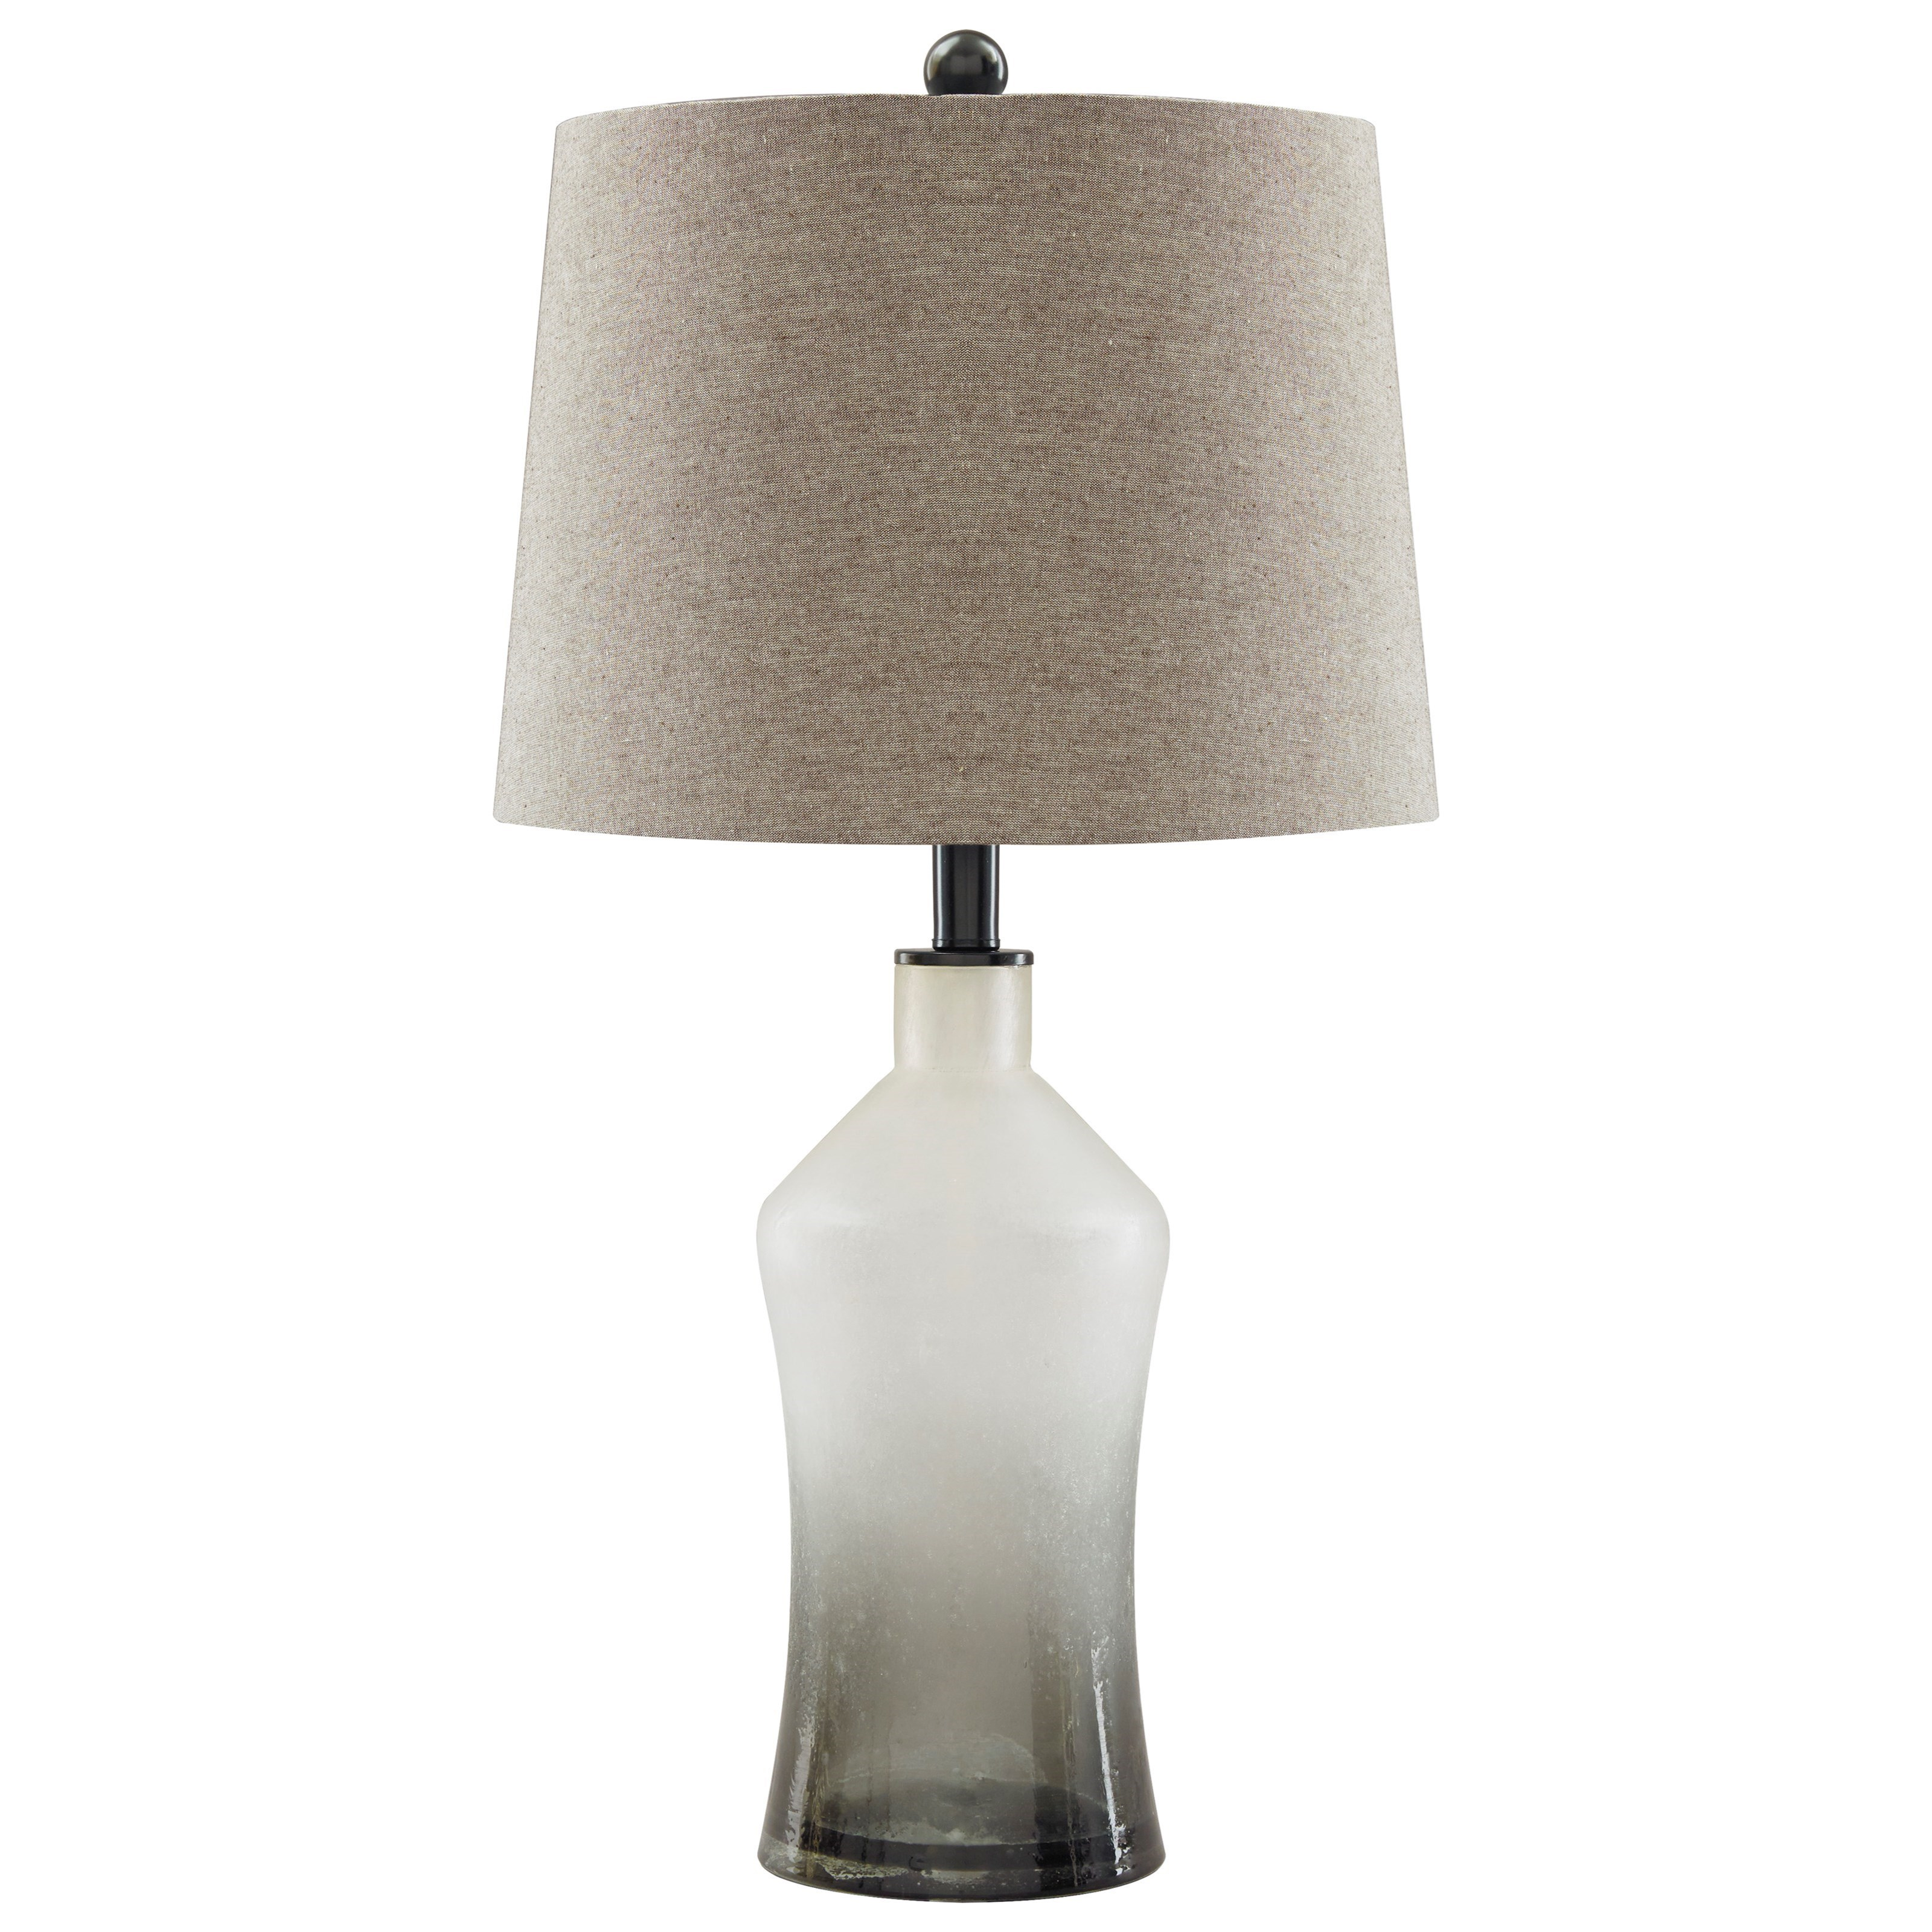 Lamps - Vintage Style Set of 2 Nollie Gray Glass Table Lamps by Ashley at Morris Home